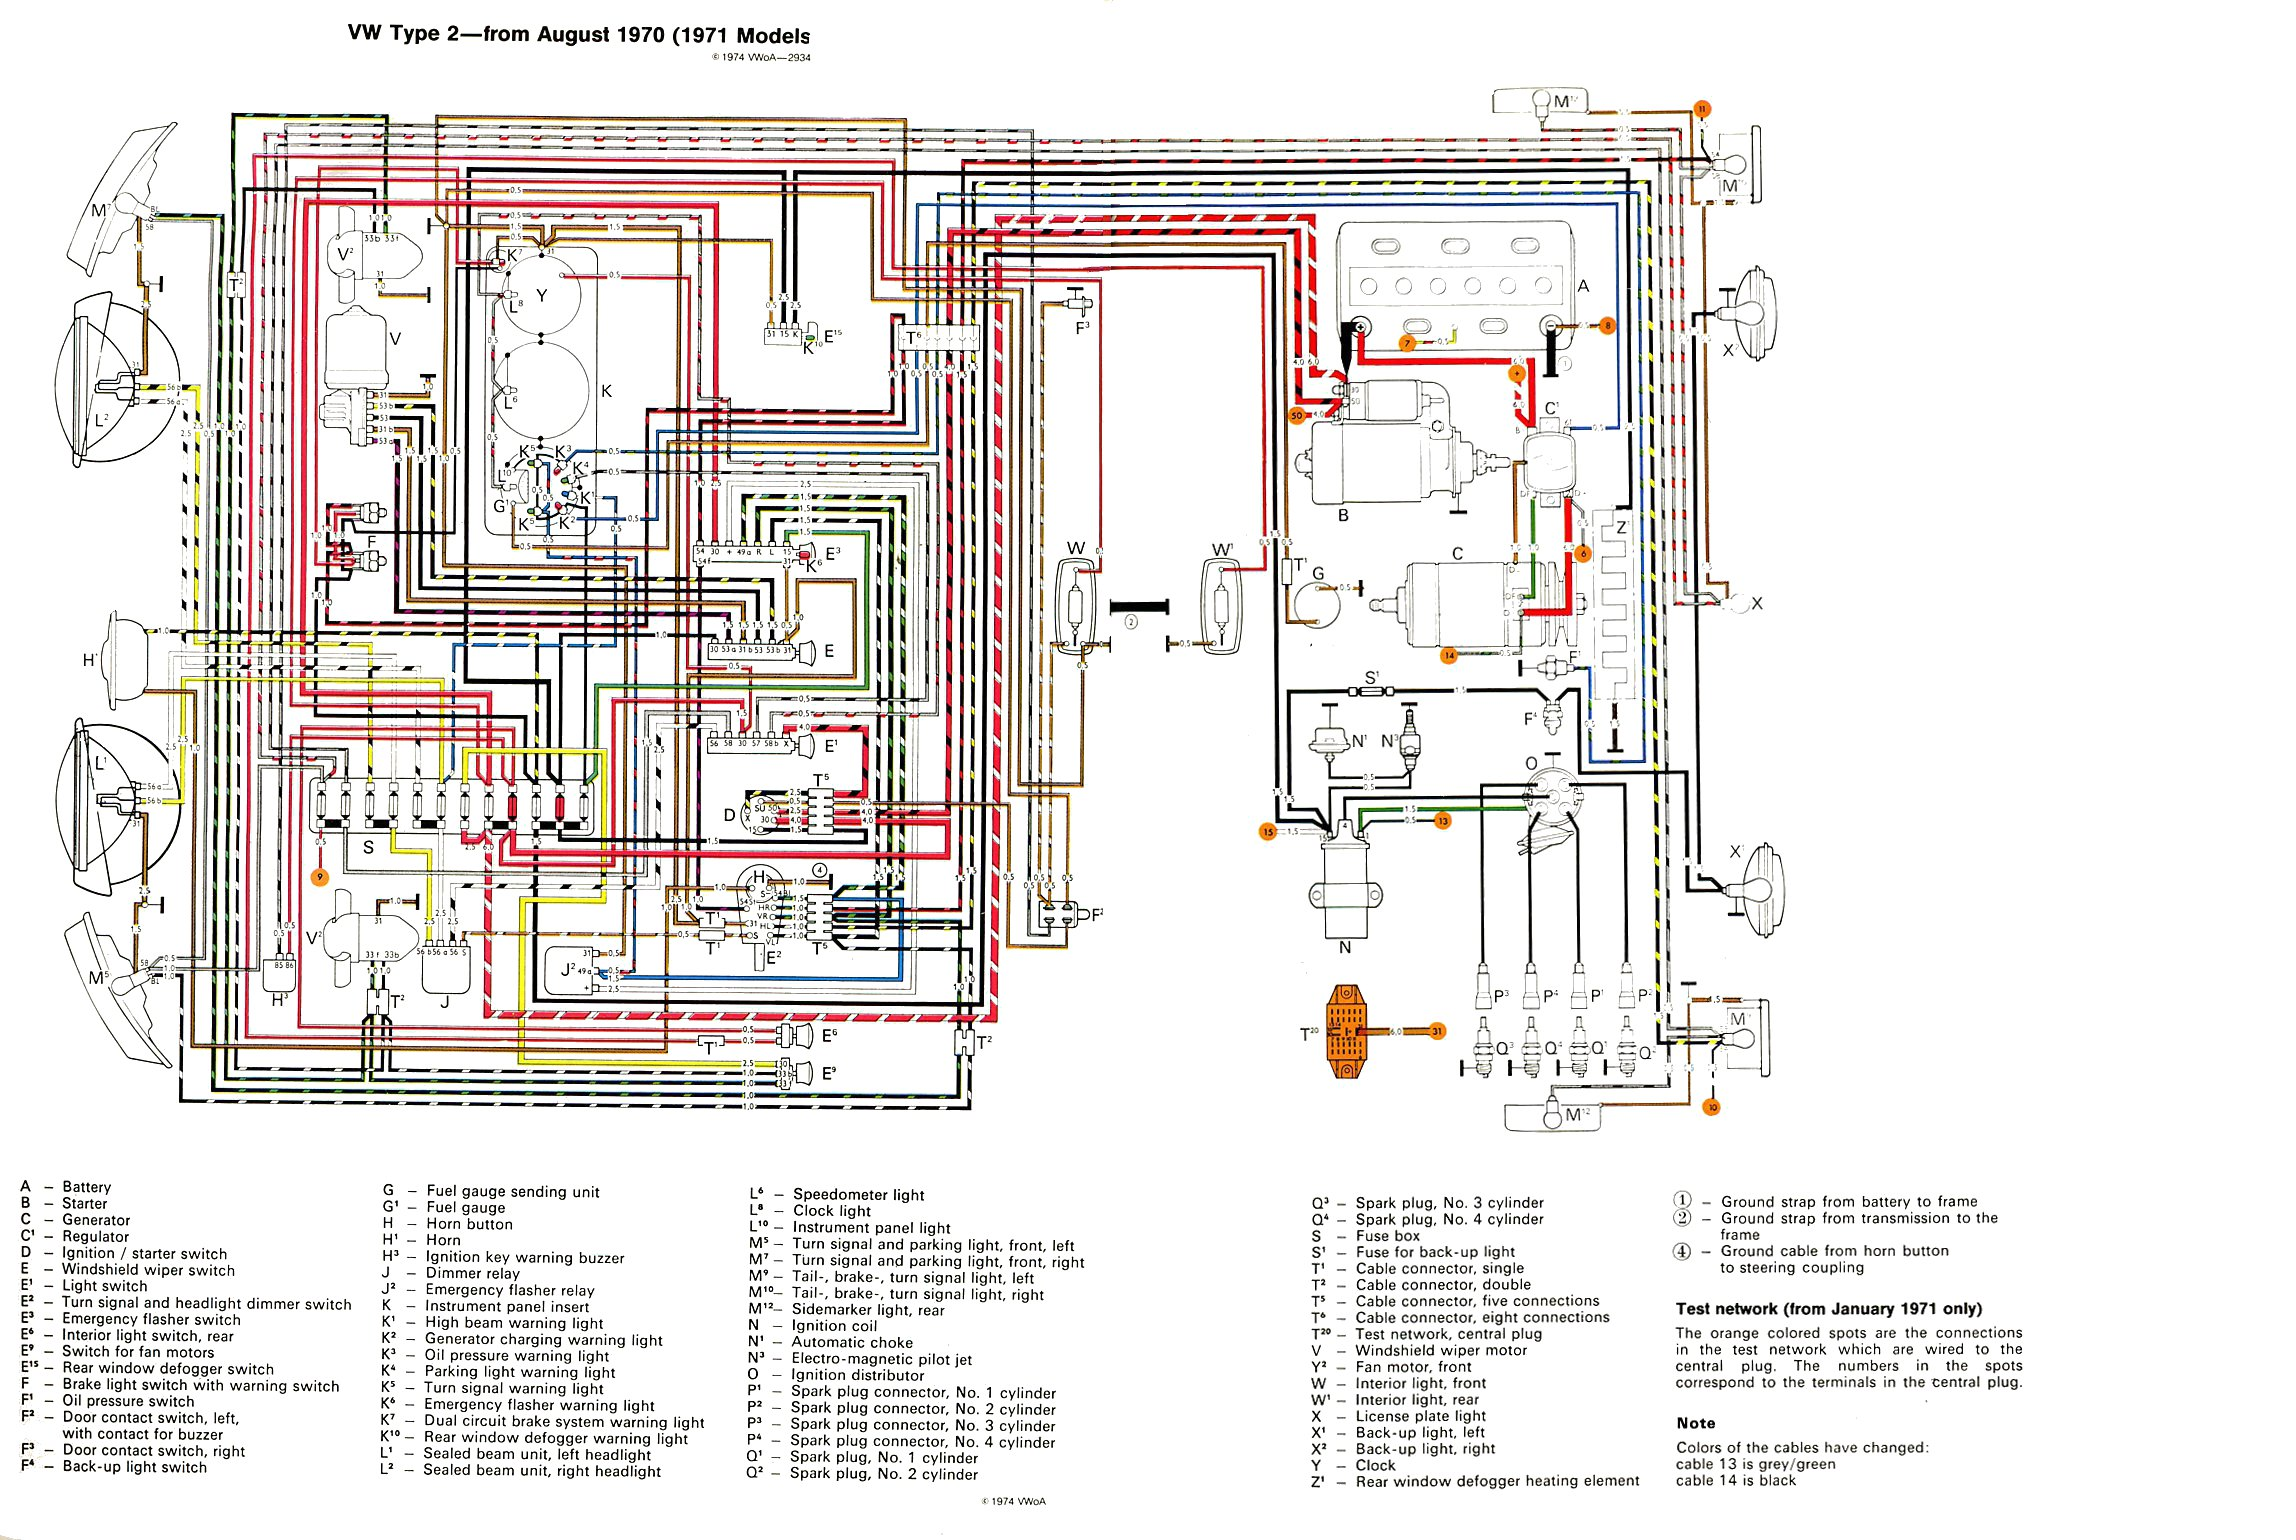 wiring diagram 4 schematic box all wiring diagram thesamba com type 2 wiring diagrams model a wiring diagram wiring diagram 4 schematic box